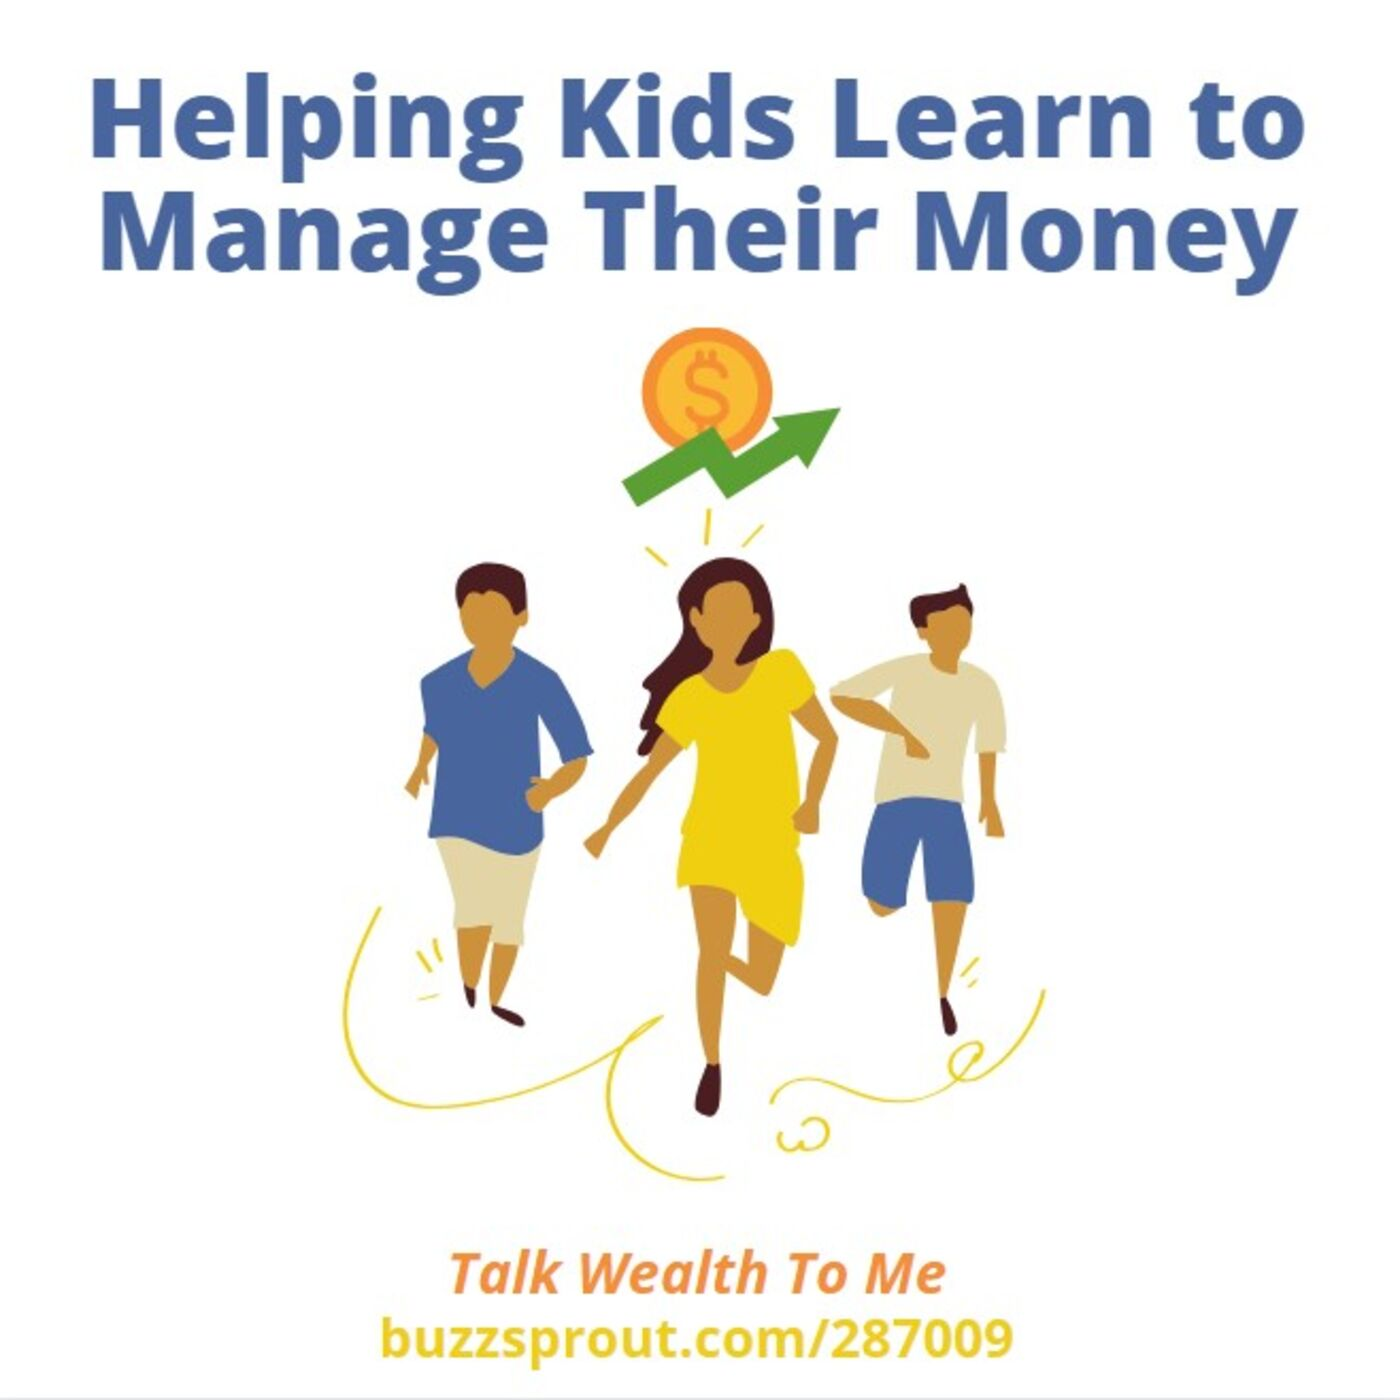 Helping Kids Learn to Manage Their Money